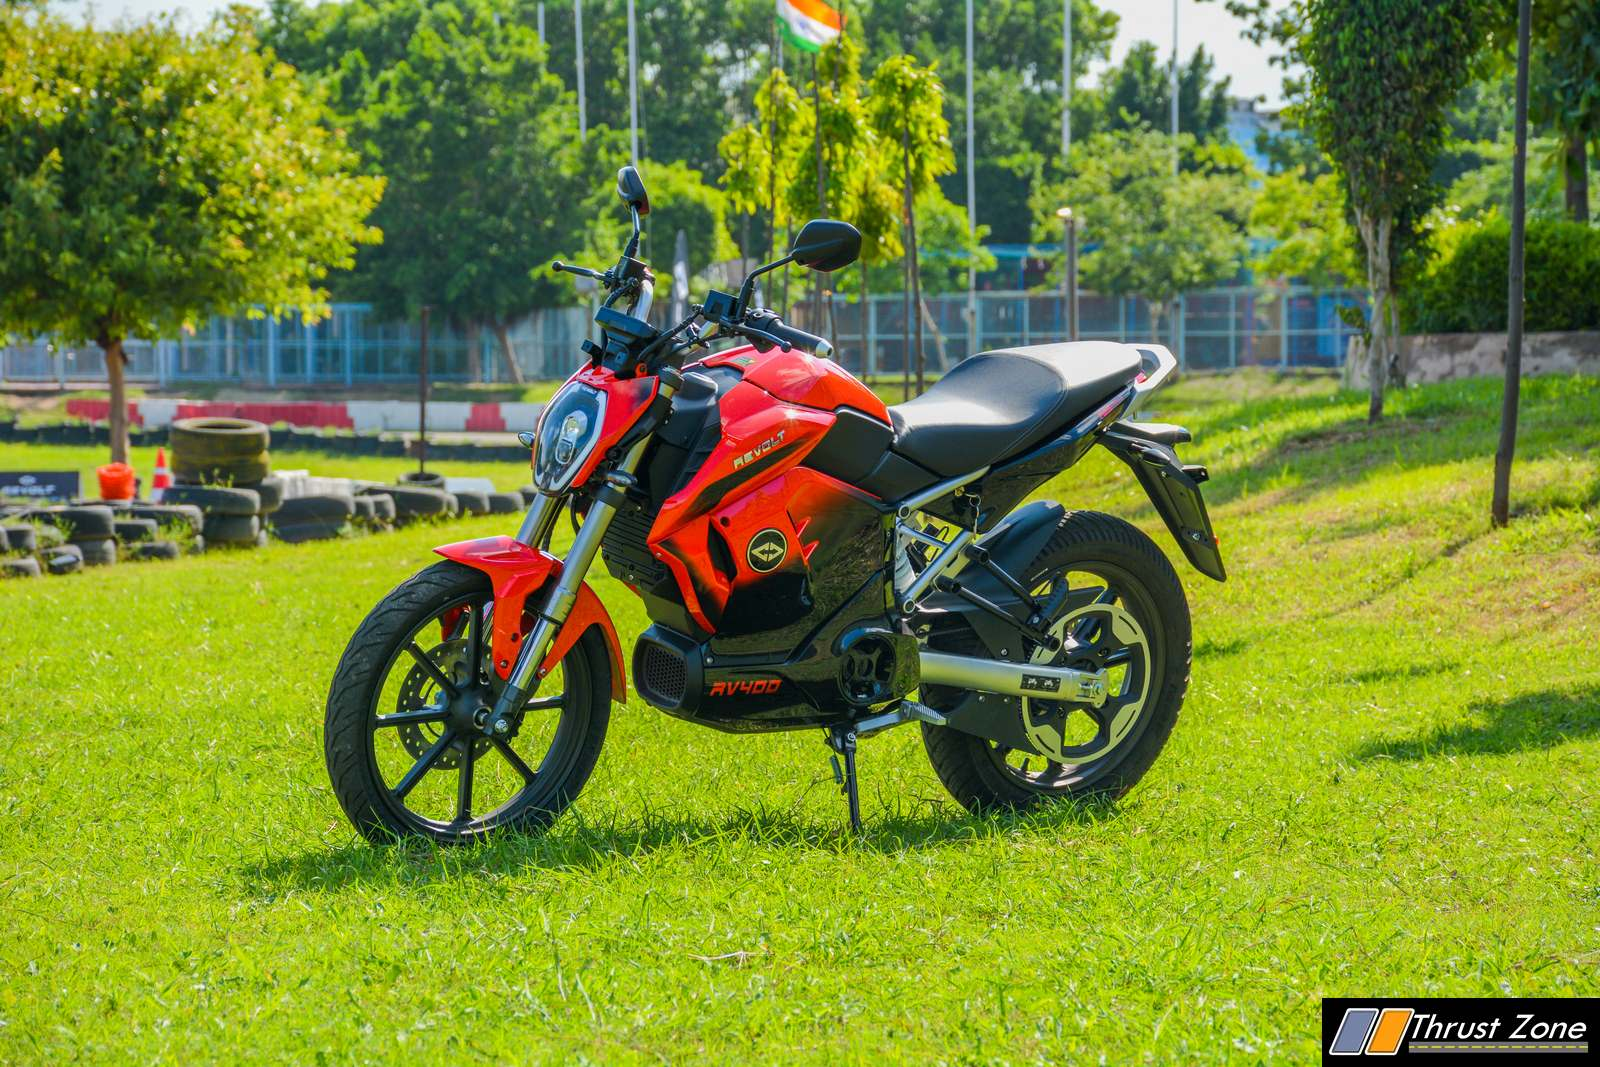 2019-Revolt-RV400-Review-Electric-Motorcycle-21